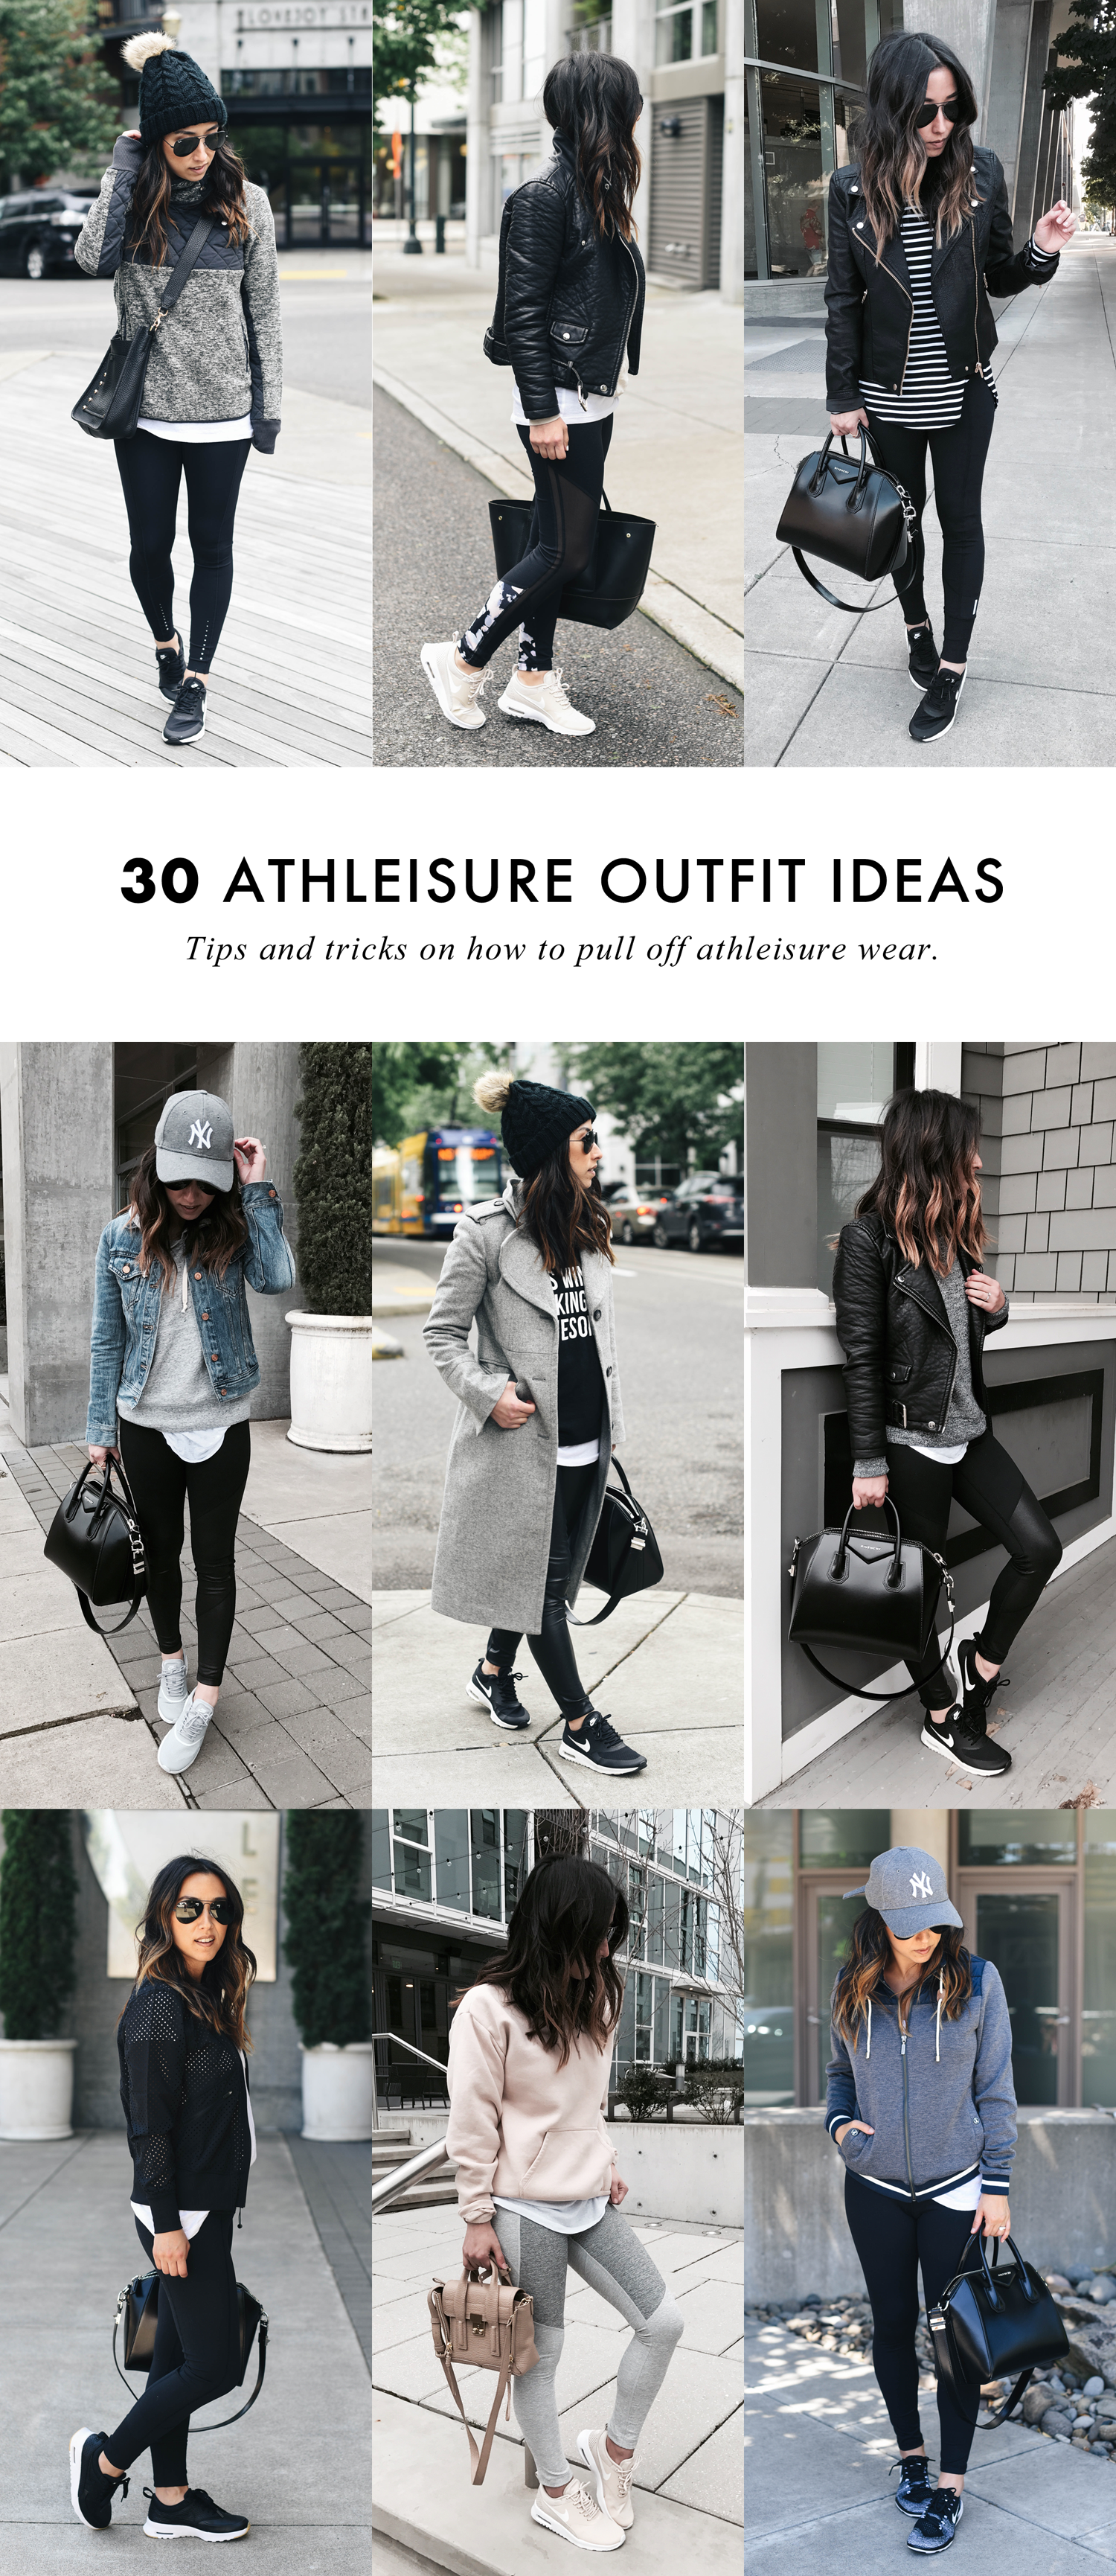 Style tips on how to wear the athleisure trend